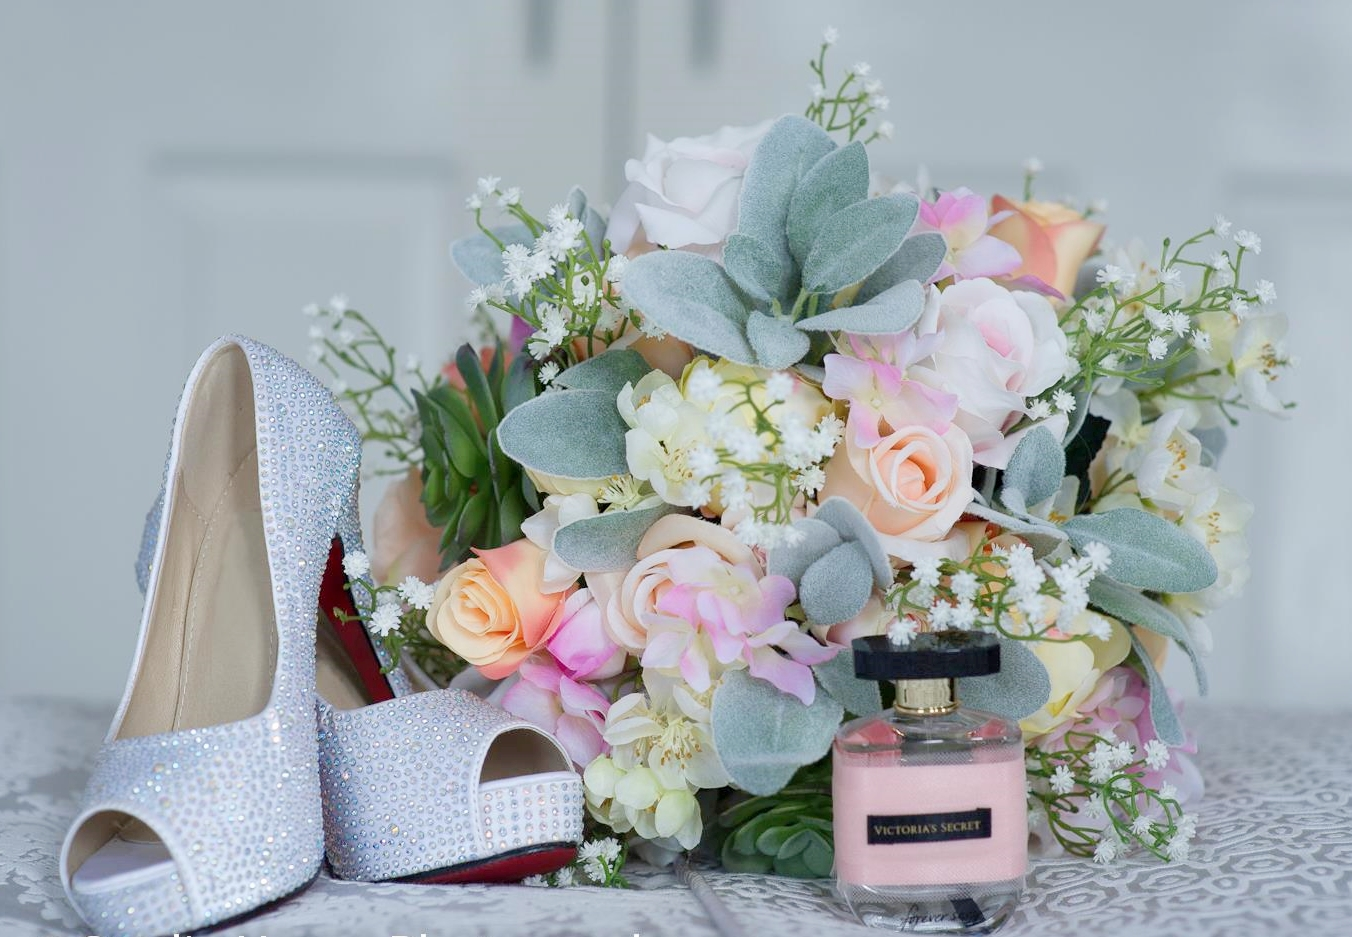 Bec's shoes, perfume and flowers